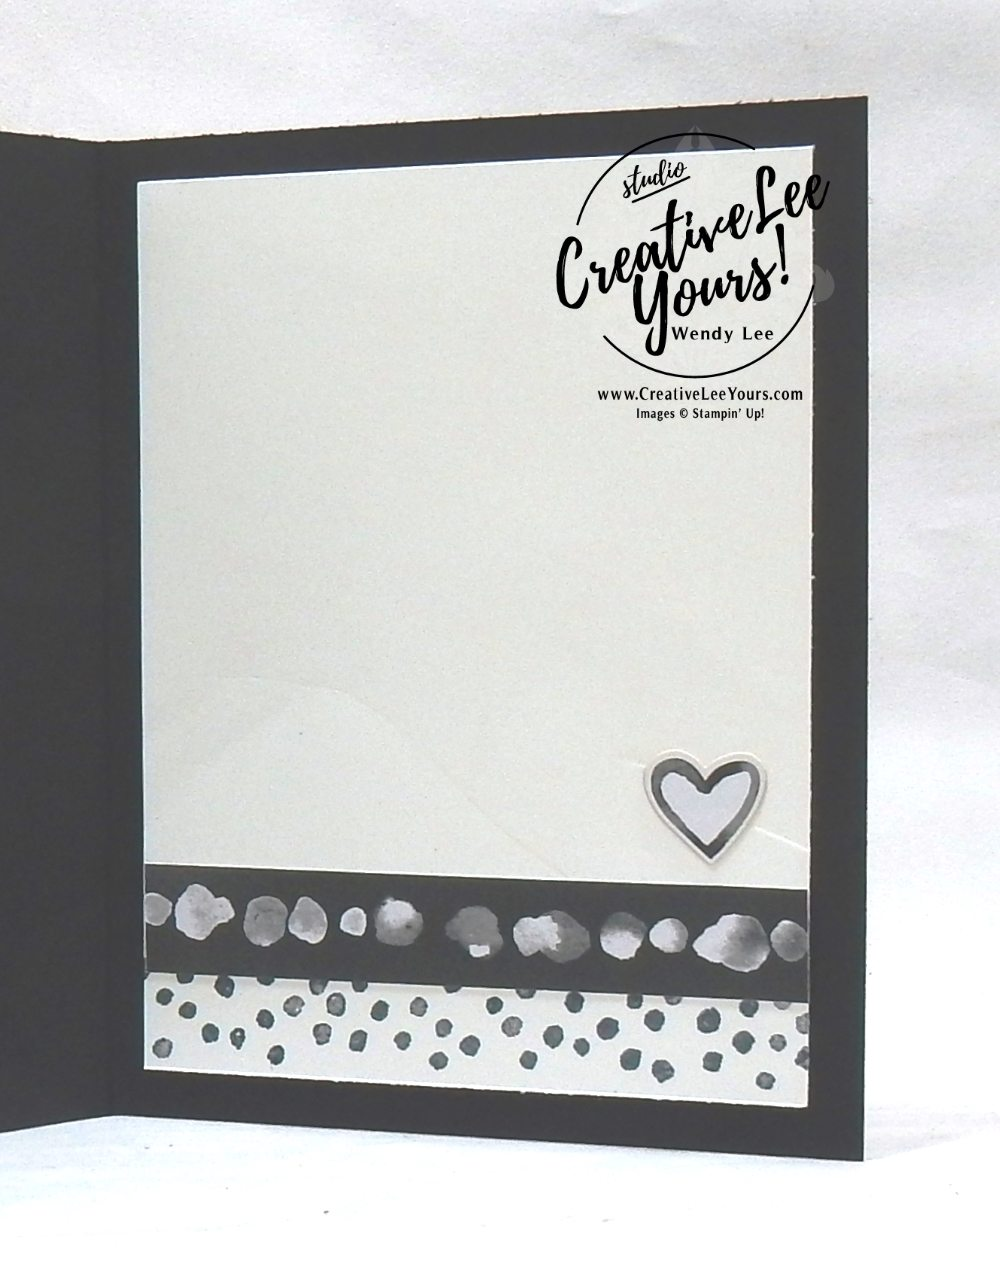 Petal Palette card class with wendy lee,stampin up, handmade,stamping,#creativeleeyours,creatively yours,creative-lee yours, all occasions cards, kit, quick & easy,love, wedding, thank you, online class,local class, petal palette stamp set,petals &more thinlits, petal passion memories & more,Kylie Bertucci,international highlights, blog hop